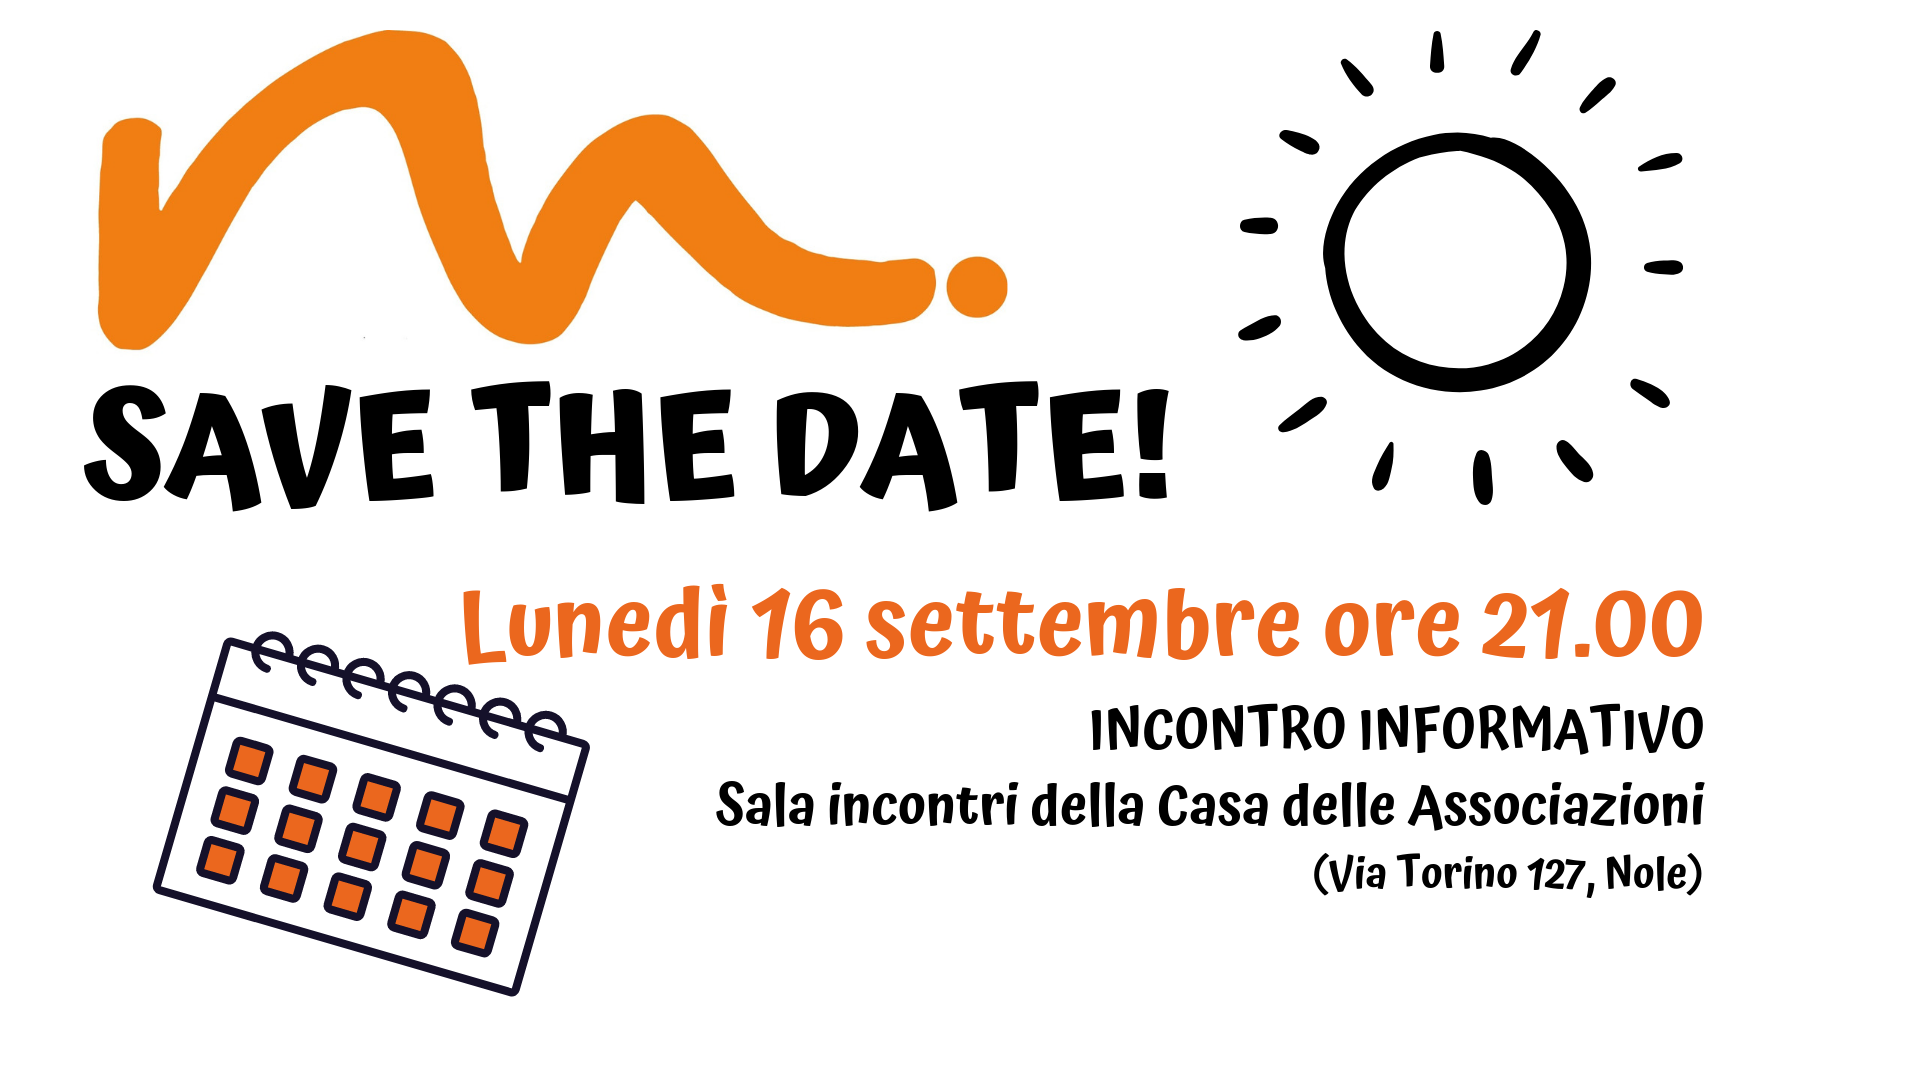 SAVE THE DATE! Riunione Informativa